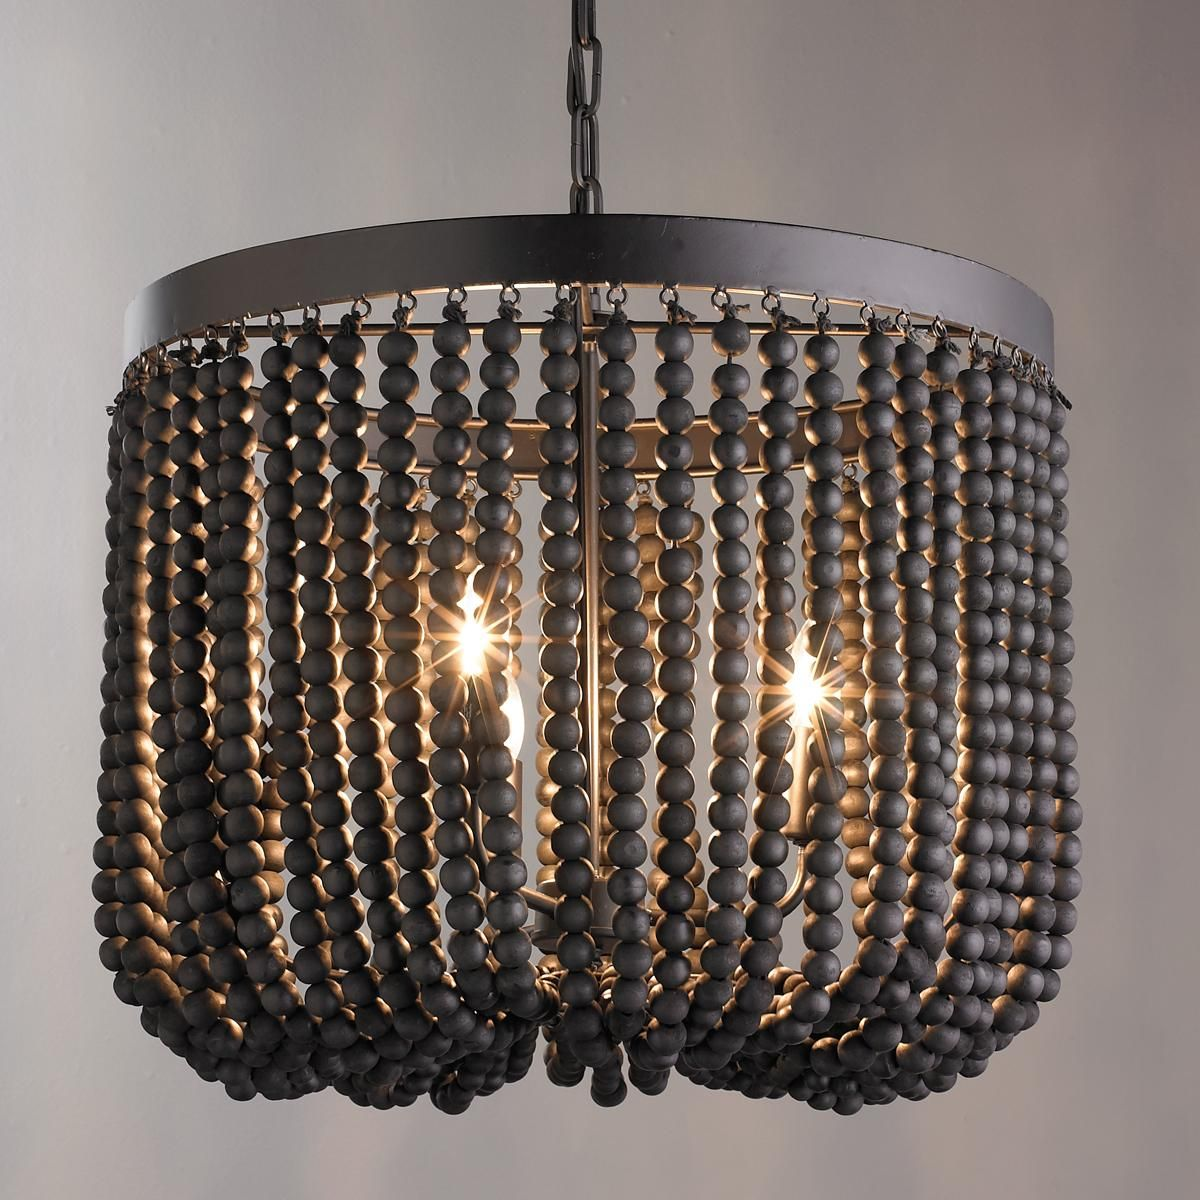 Wood Beaded Draped Chandelier Black Wood Painted Beads Drape From A Metal Frame To Create This Un Wood Bead Chandelier Wooden Bead Chandelier Beaded Chandelier